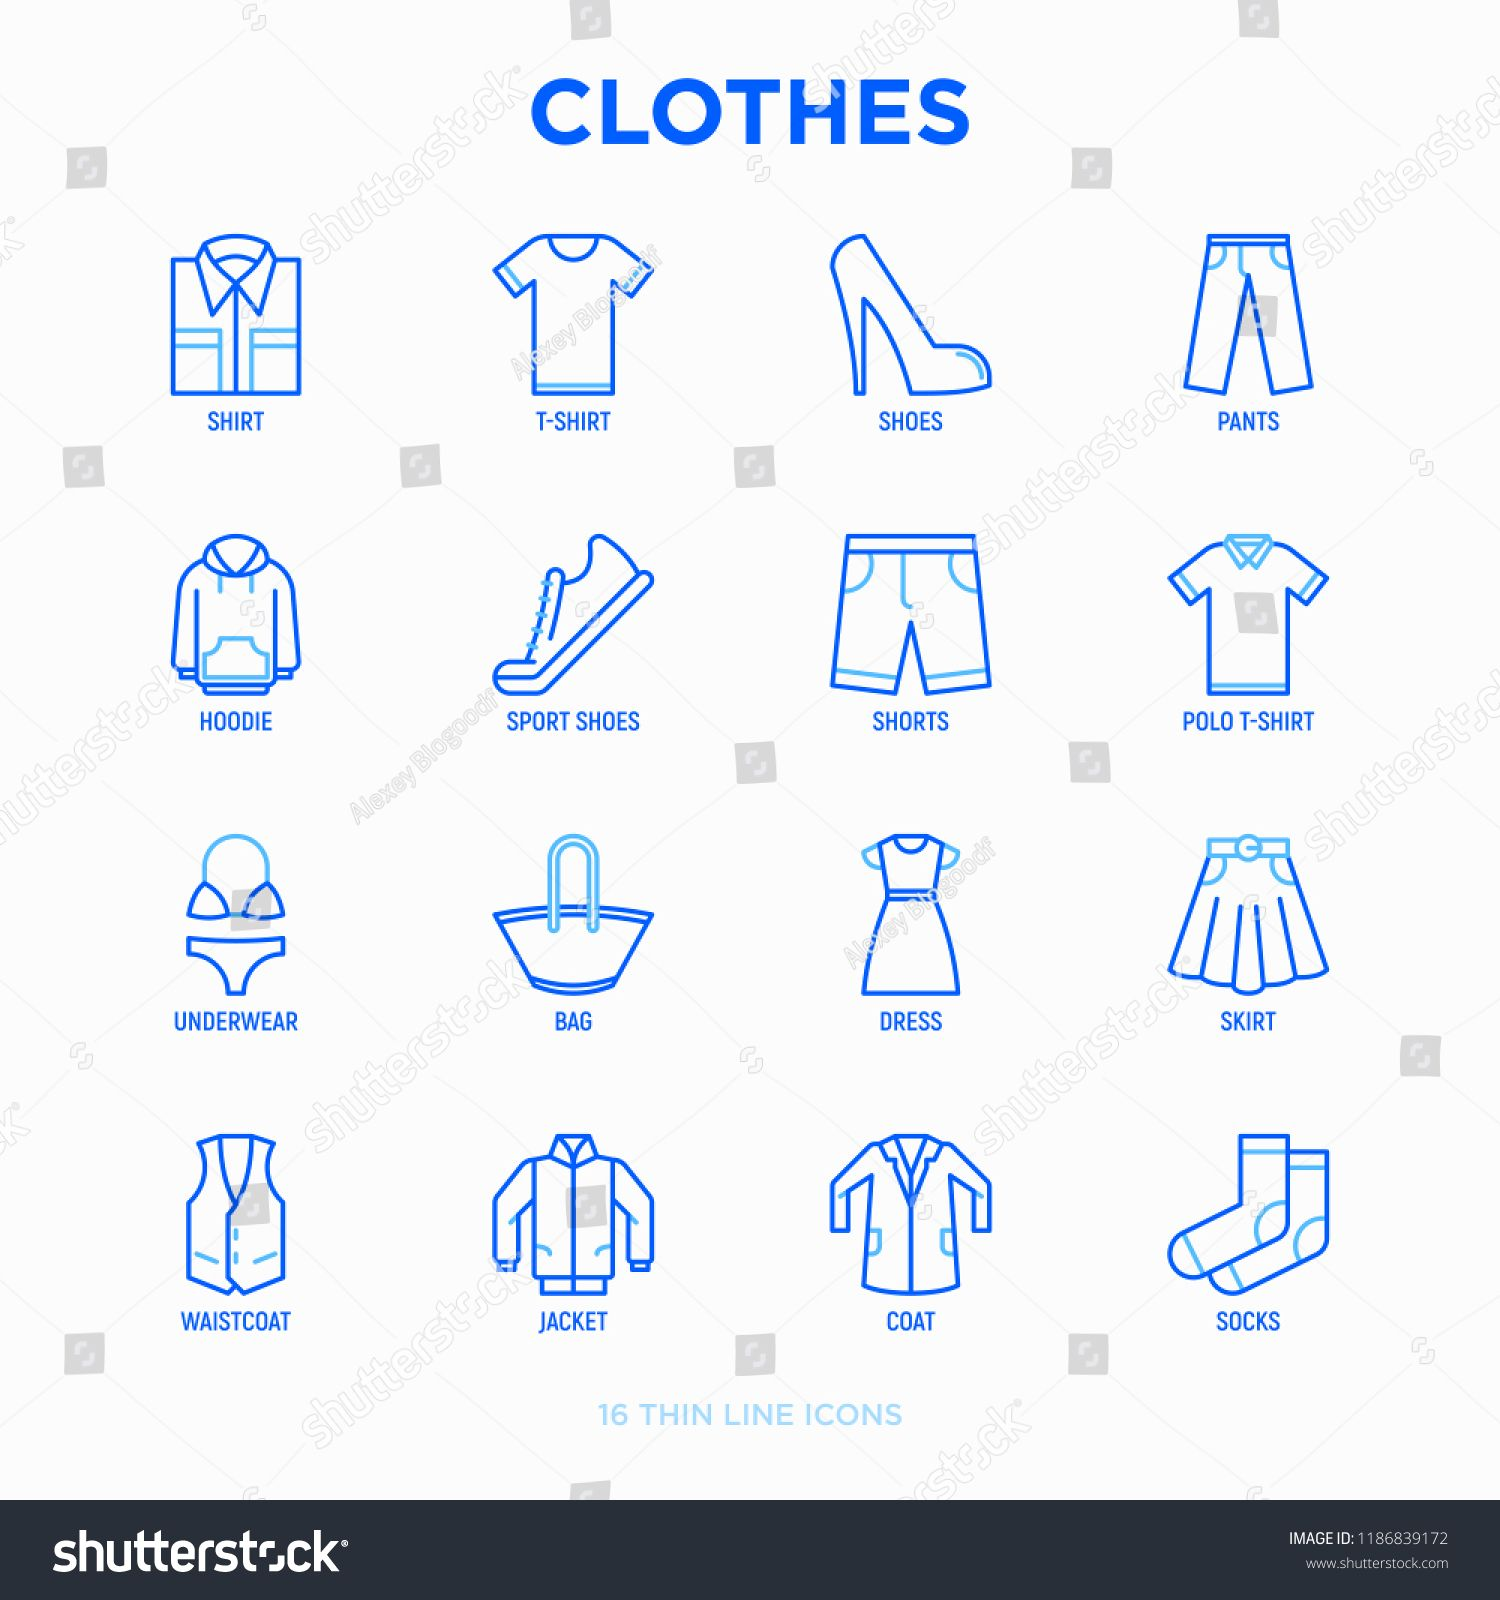 clipart library stock Vector clothing shirt pant. Pin on infographic templates